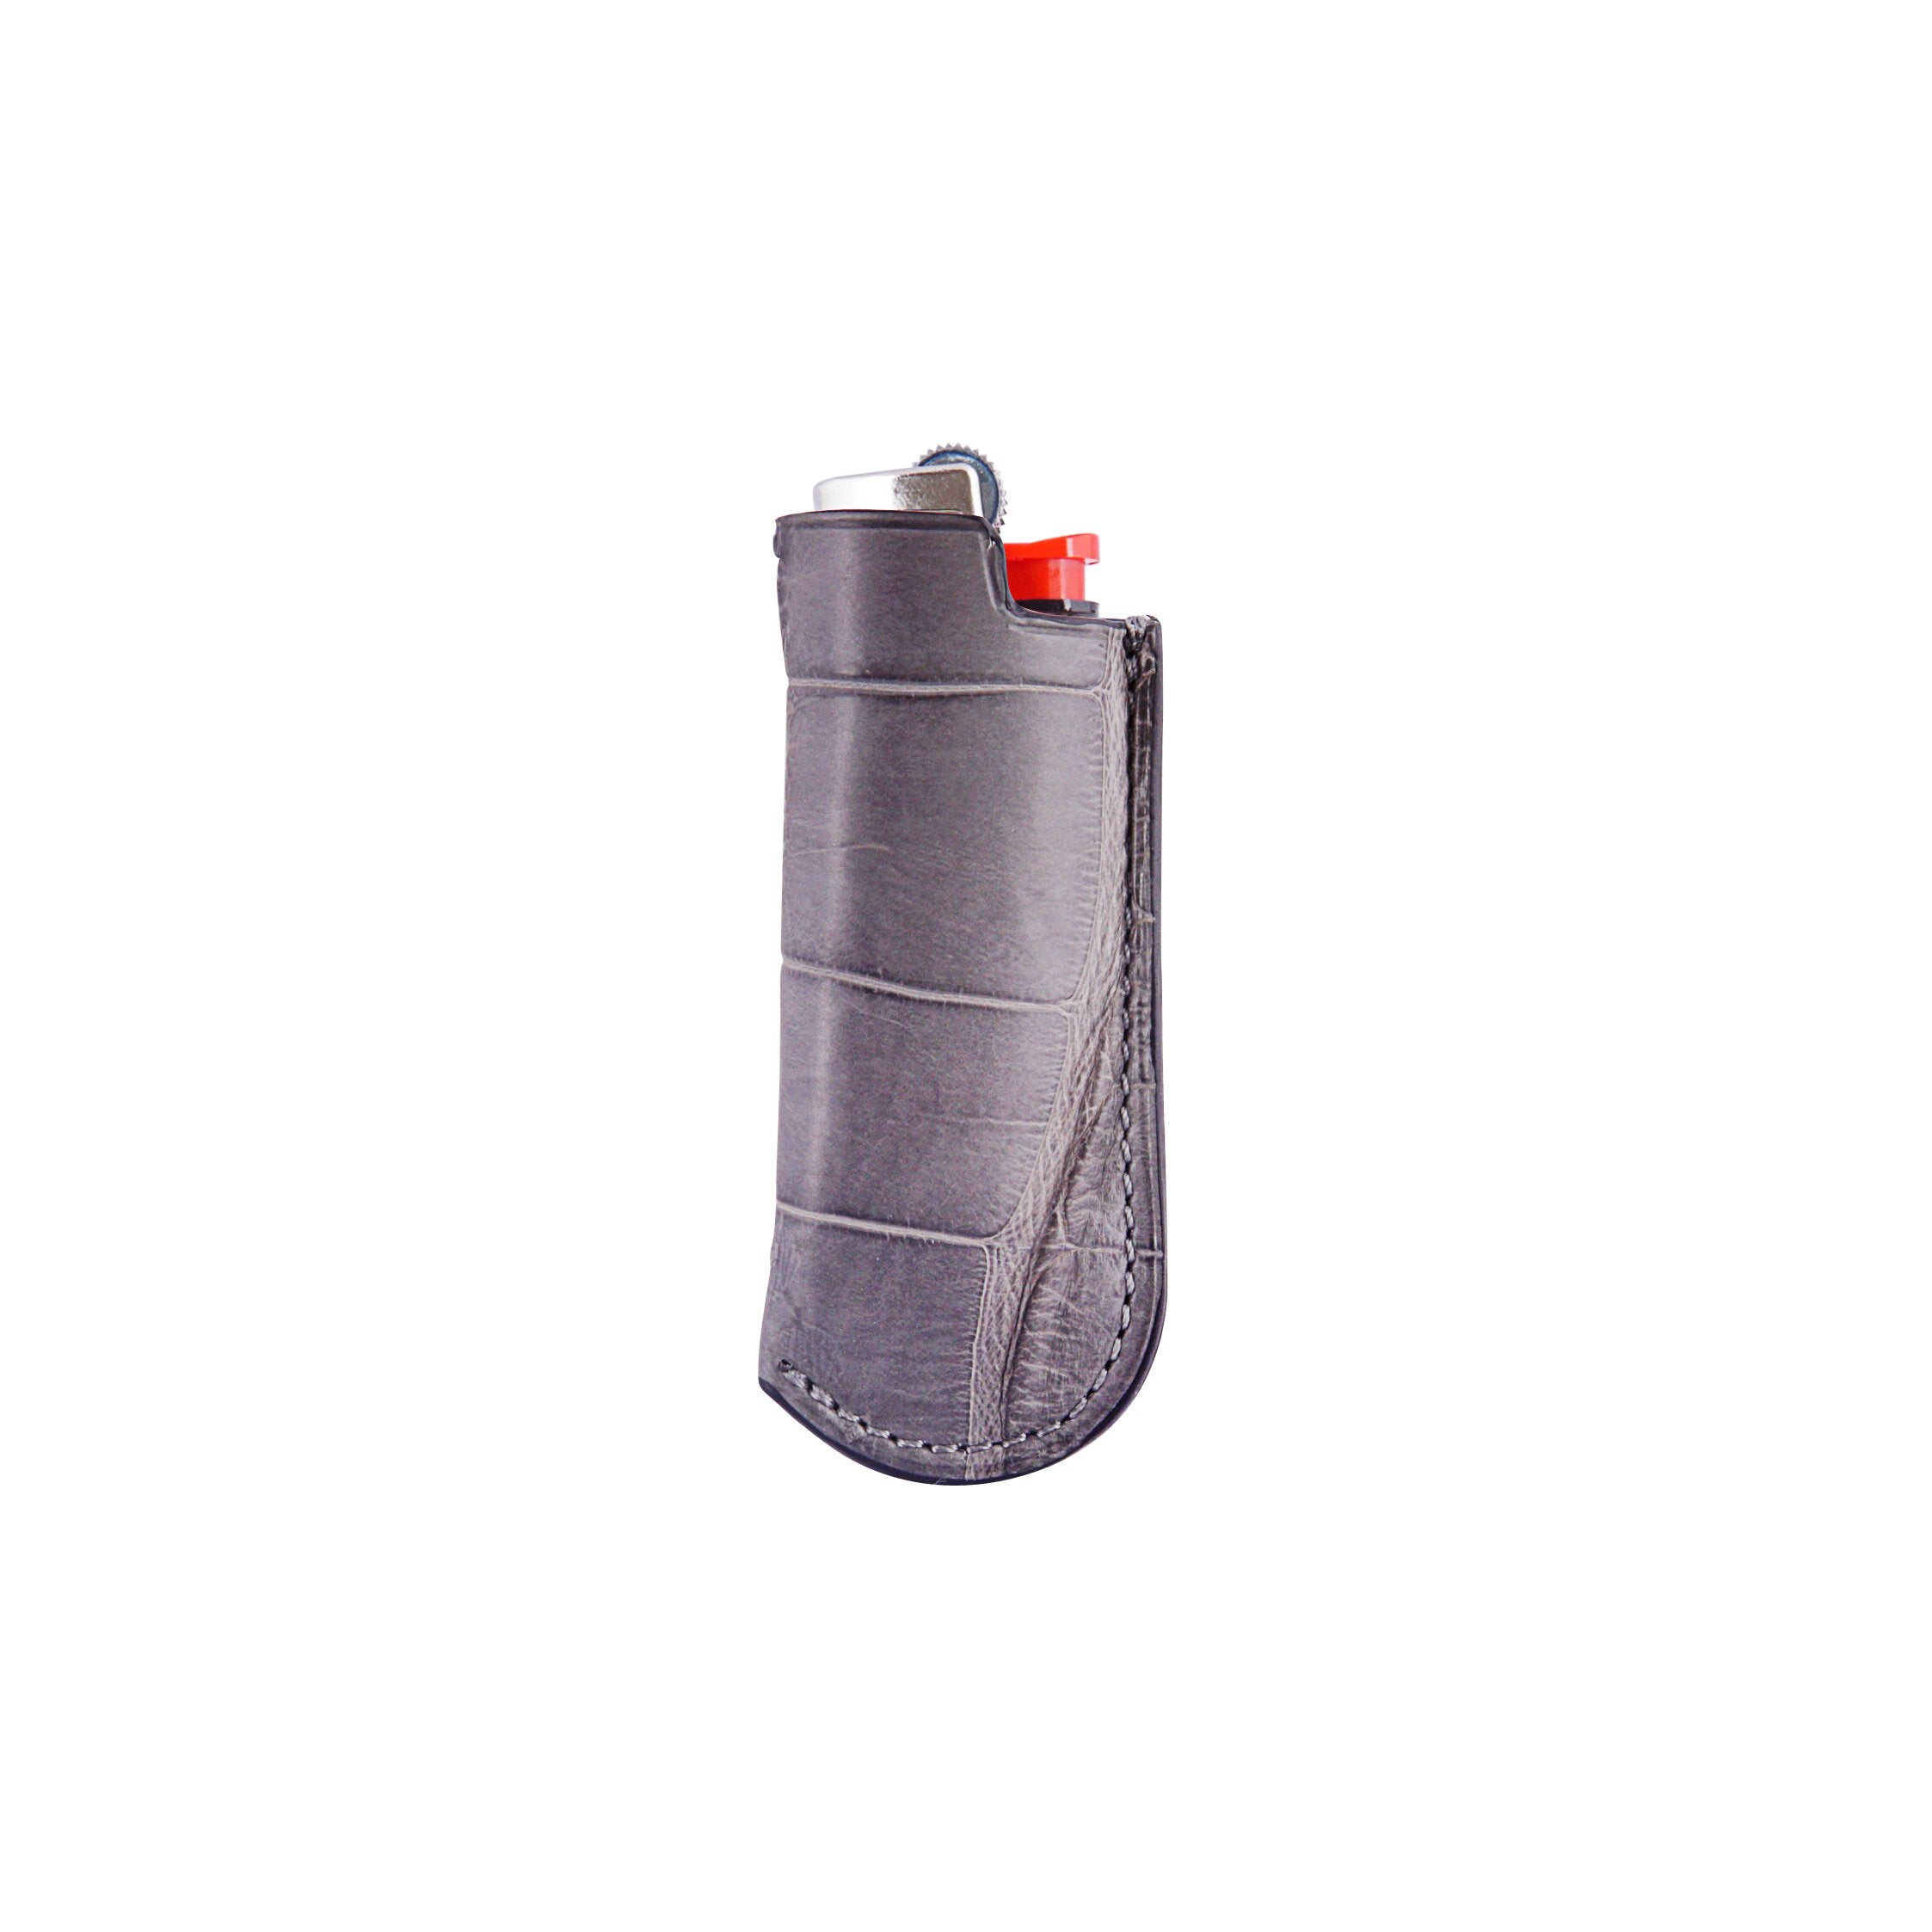 Lighter Case - Gray Crocodile Leather